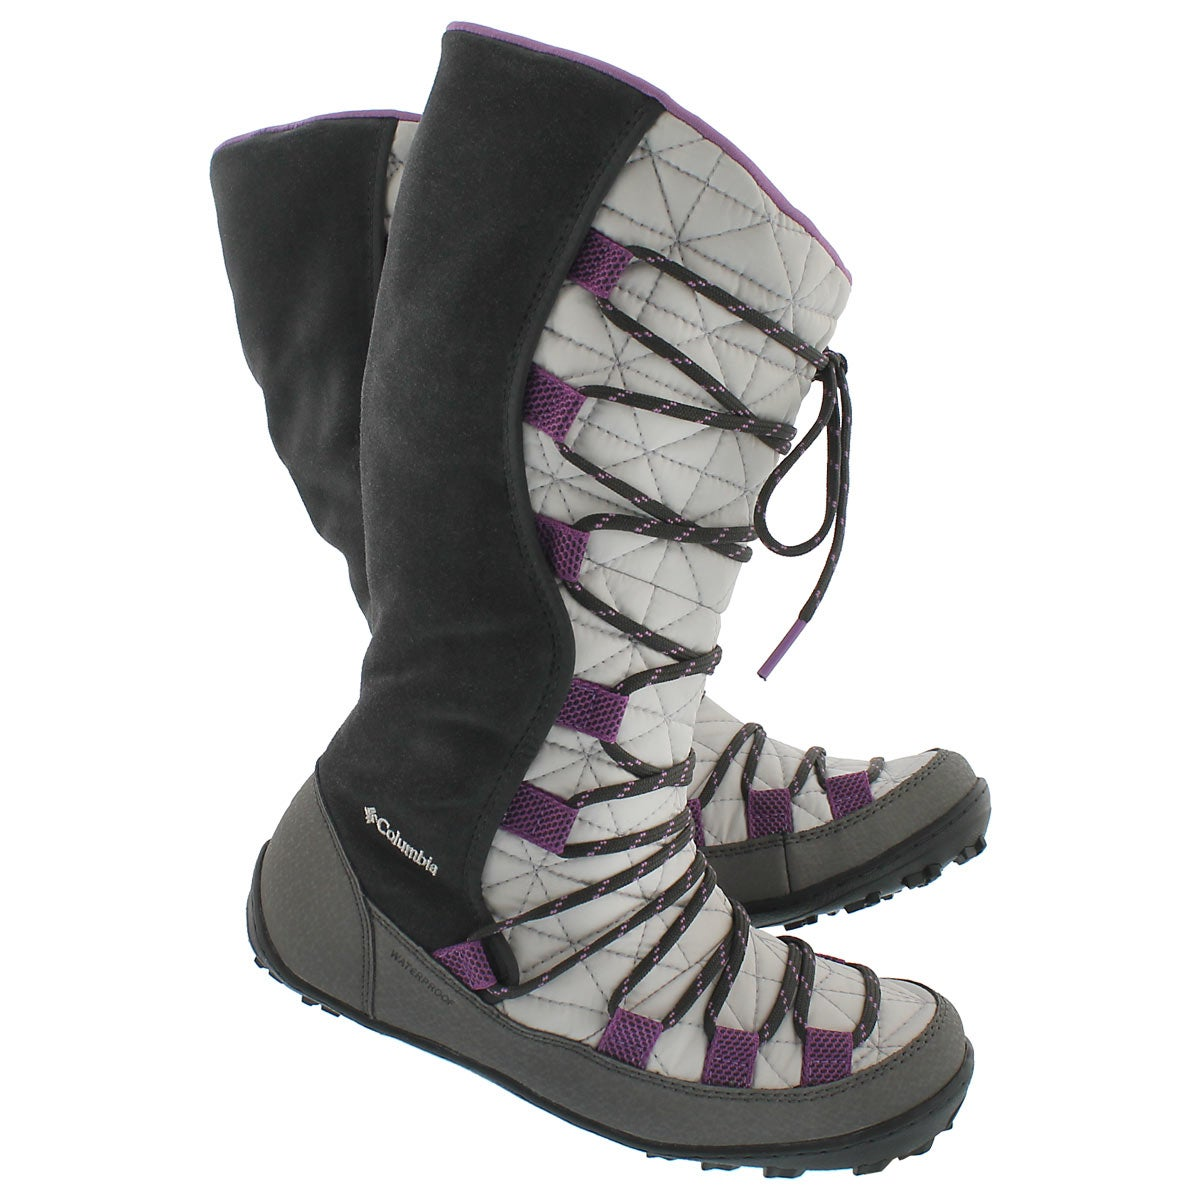 Botte LOVELANDOmni-Heat, gris/violet,fil